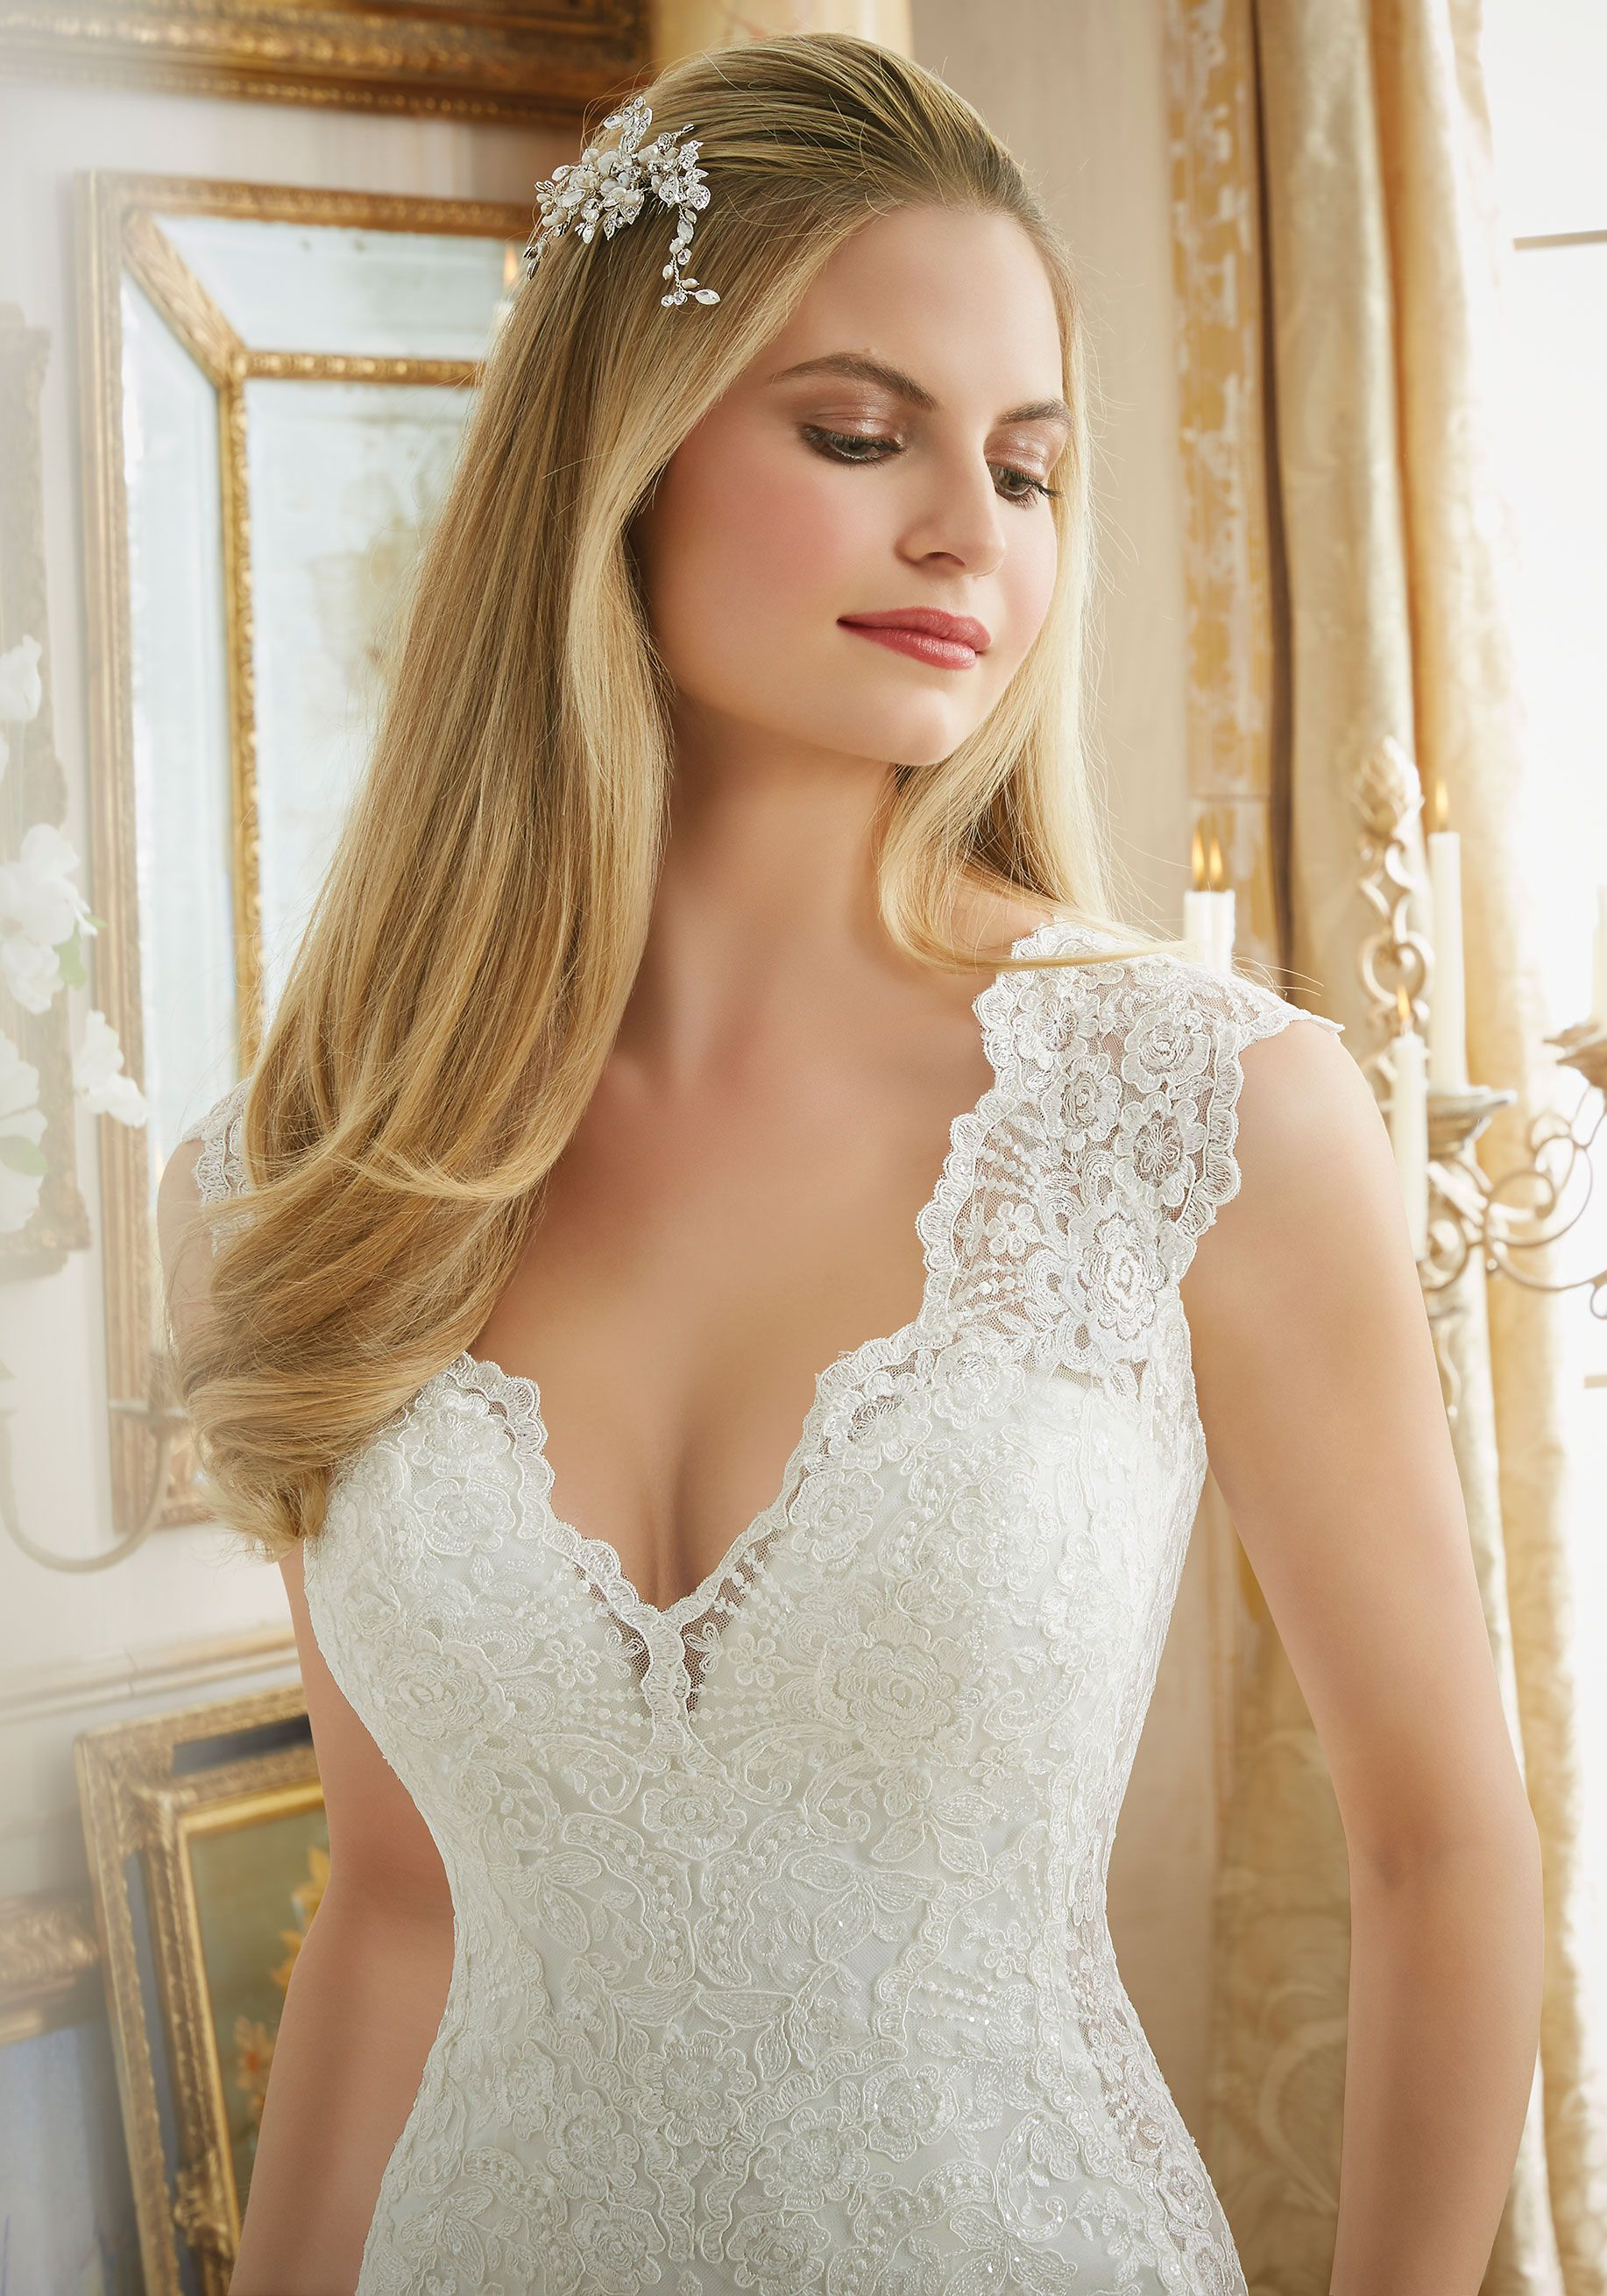 Color embroidered wedding dress  Beautifully Frosted Beading on Embroidered Lace Appliqués onto Tulle